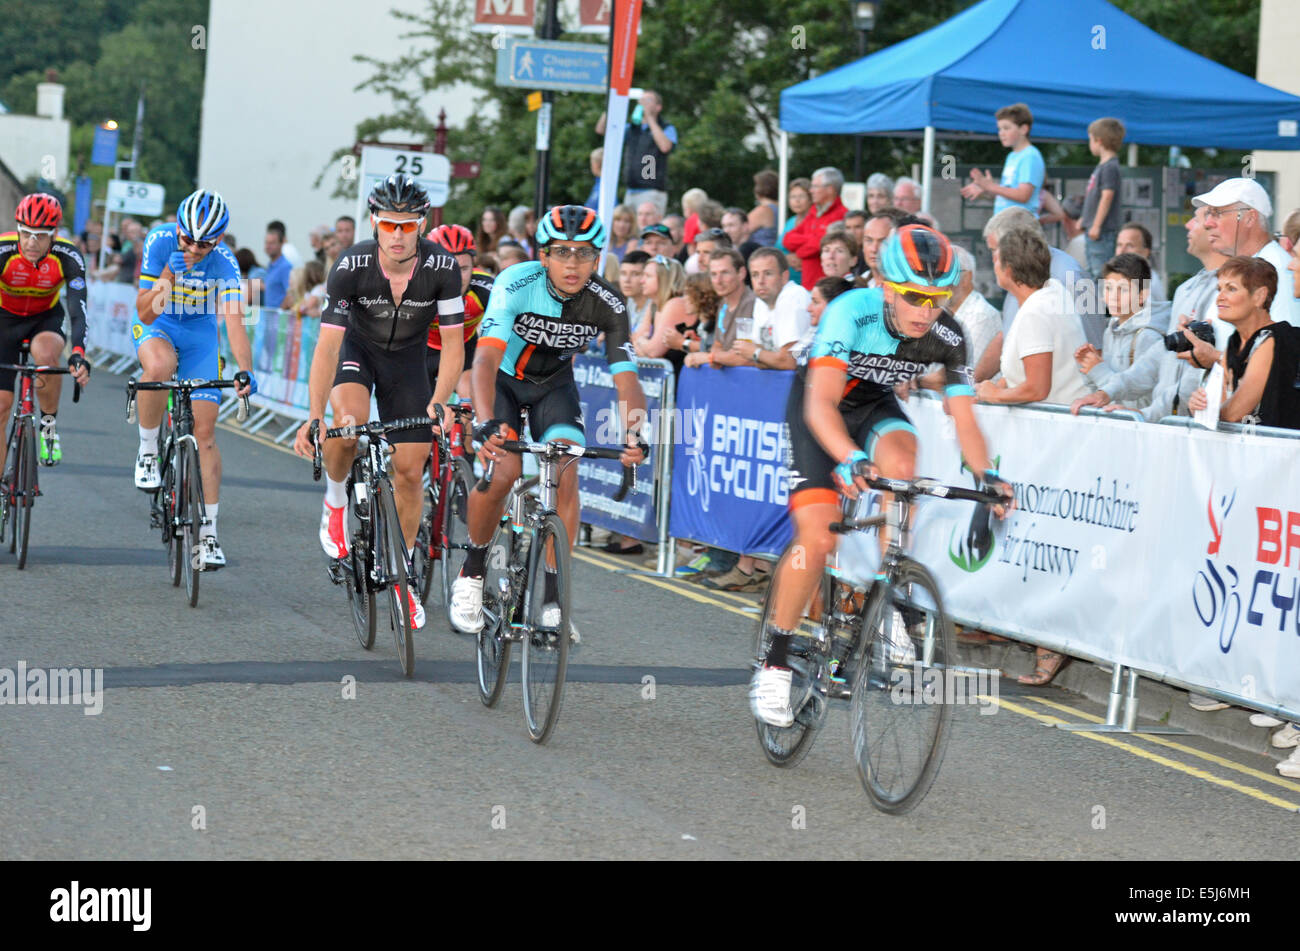 Town Center Cycling in Chepstow in Wales. The Wales Open Criterium, consisting of Elite riders racing over a 1.17 - Stock Image